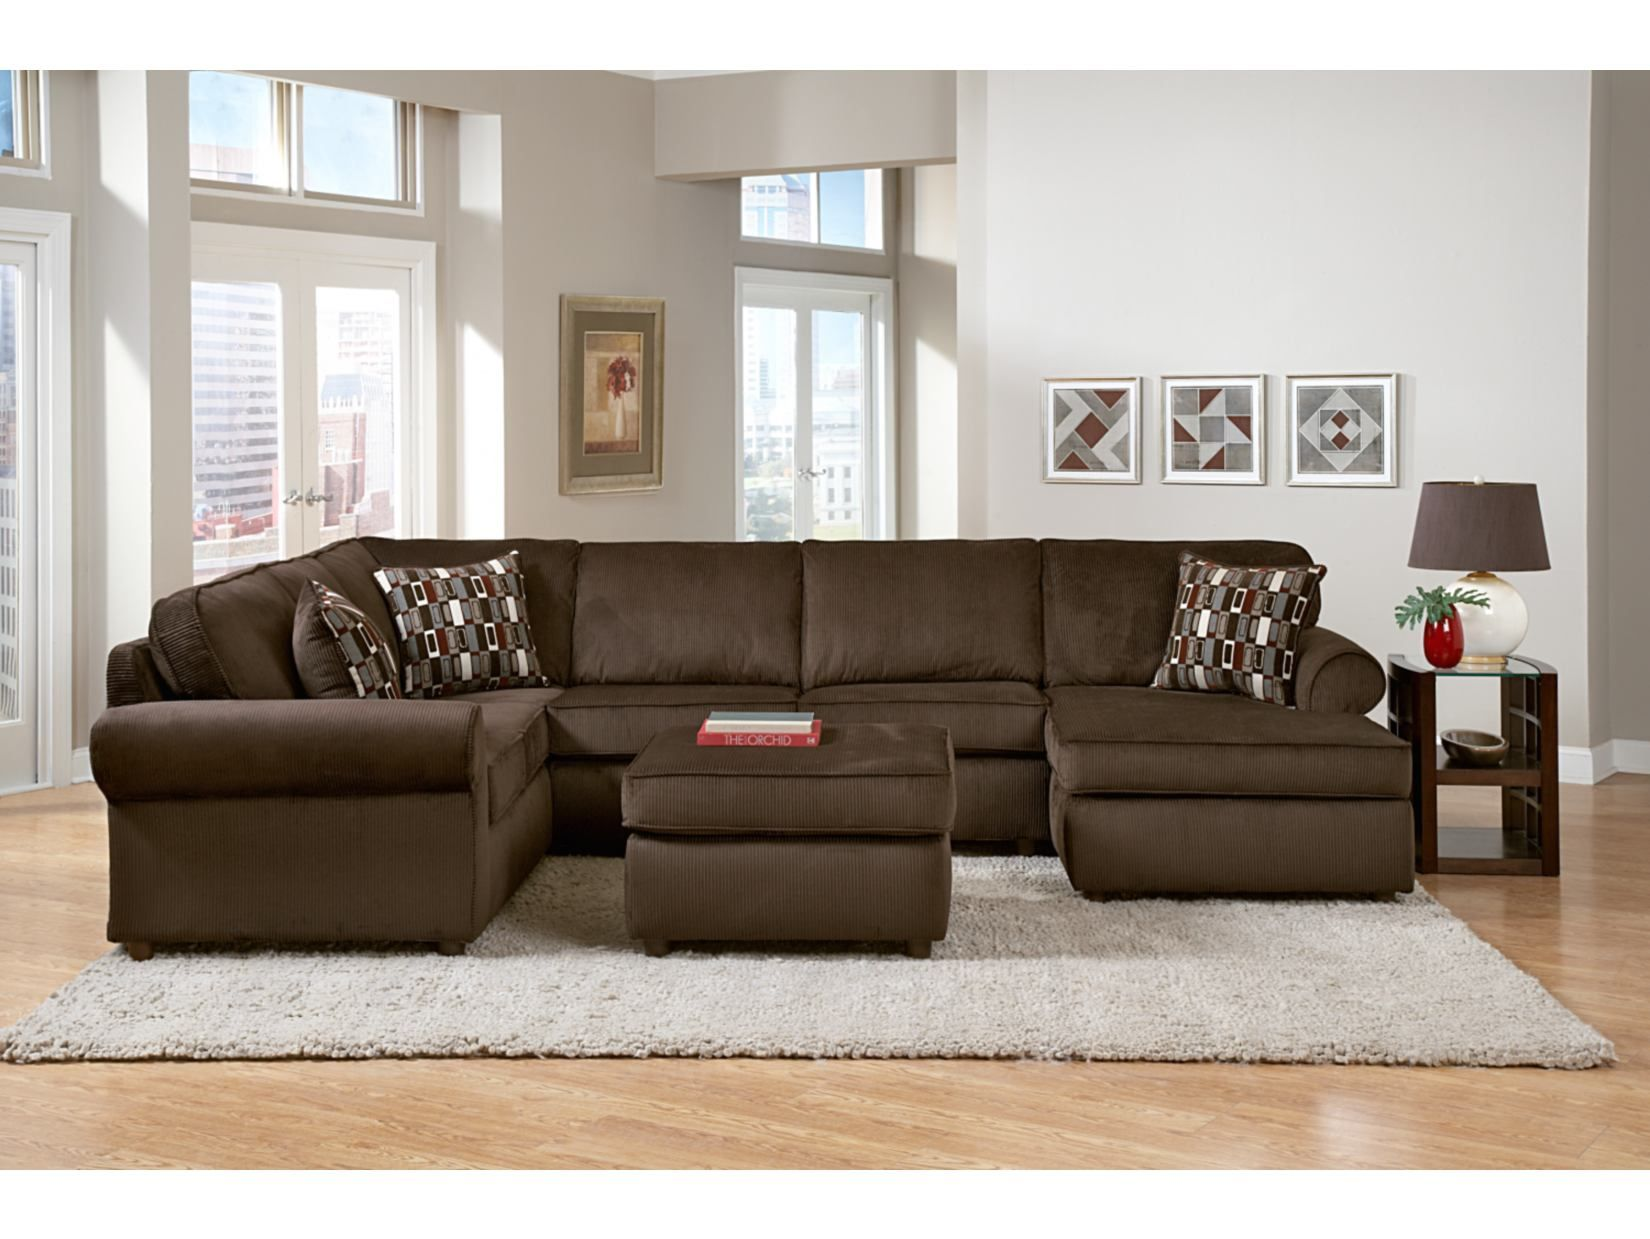 Charmant Monarch Chocolate 3 PC Sectional   Value City Furniture #ValueCityPinToWin